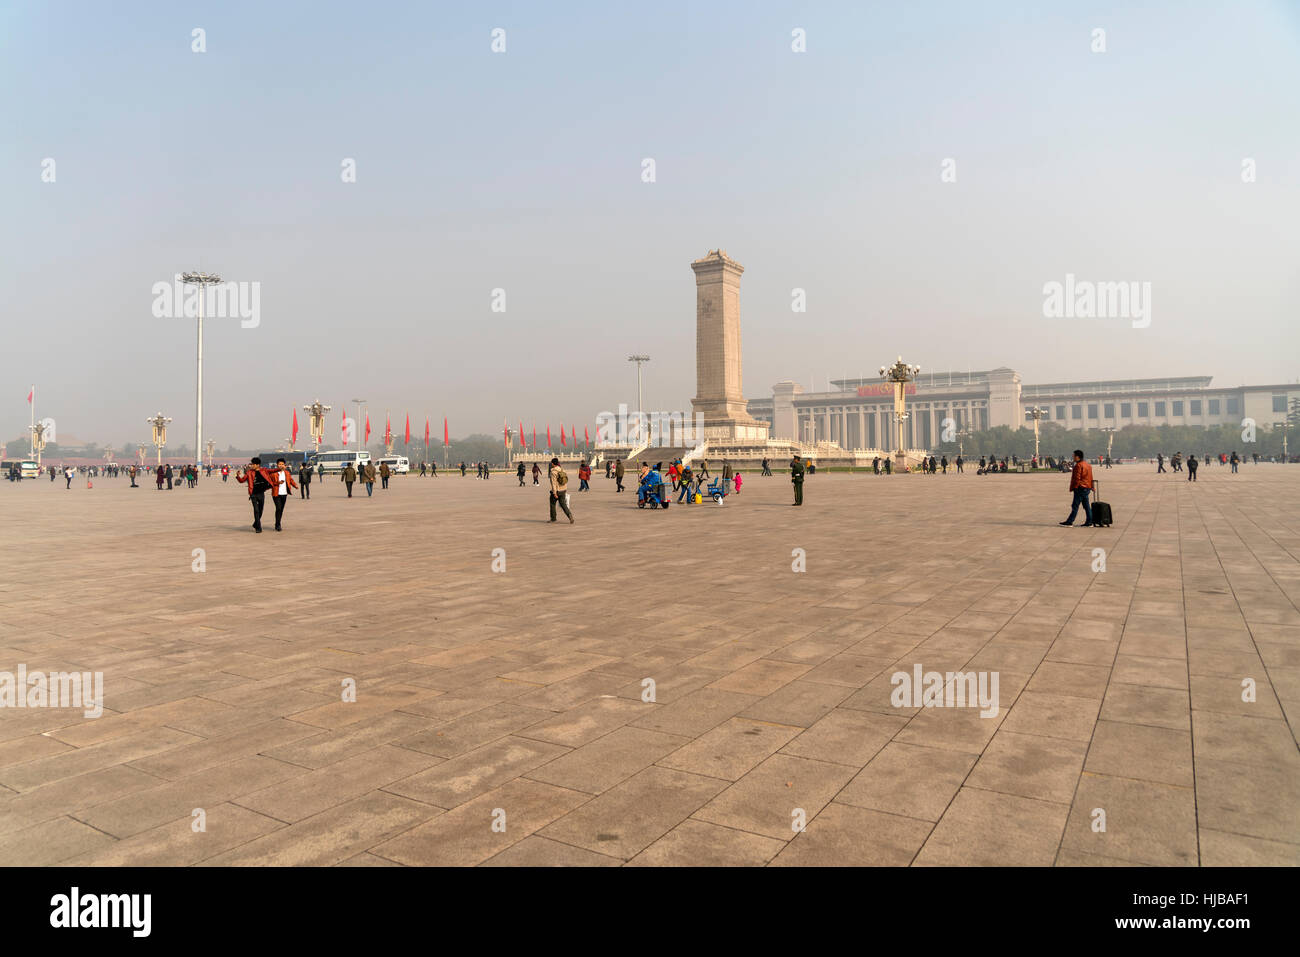 The Monument to the People's Heroes on Tiananmen Square, Beijing, People's Republic of China, Asia - Stock Image